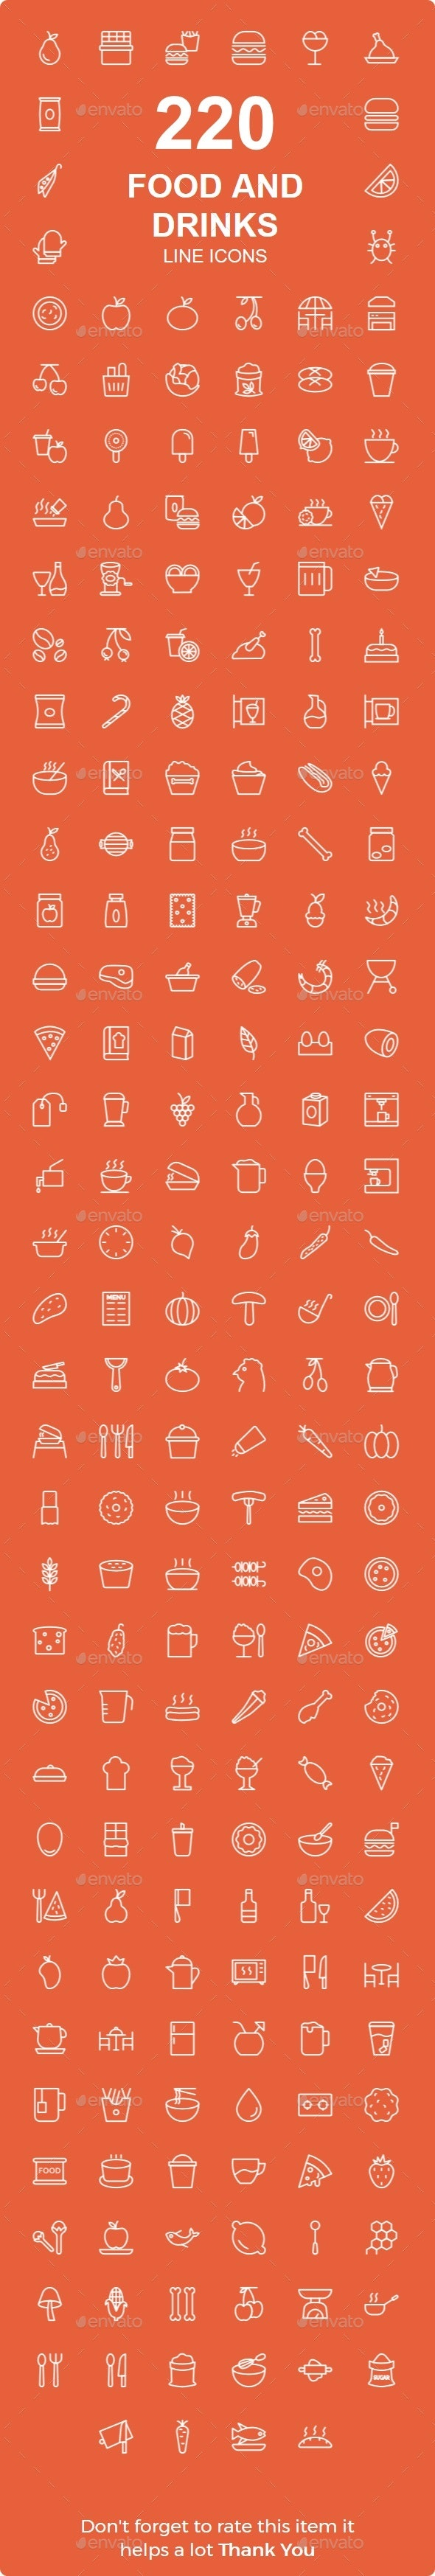 220 Food and Drinks line icons